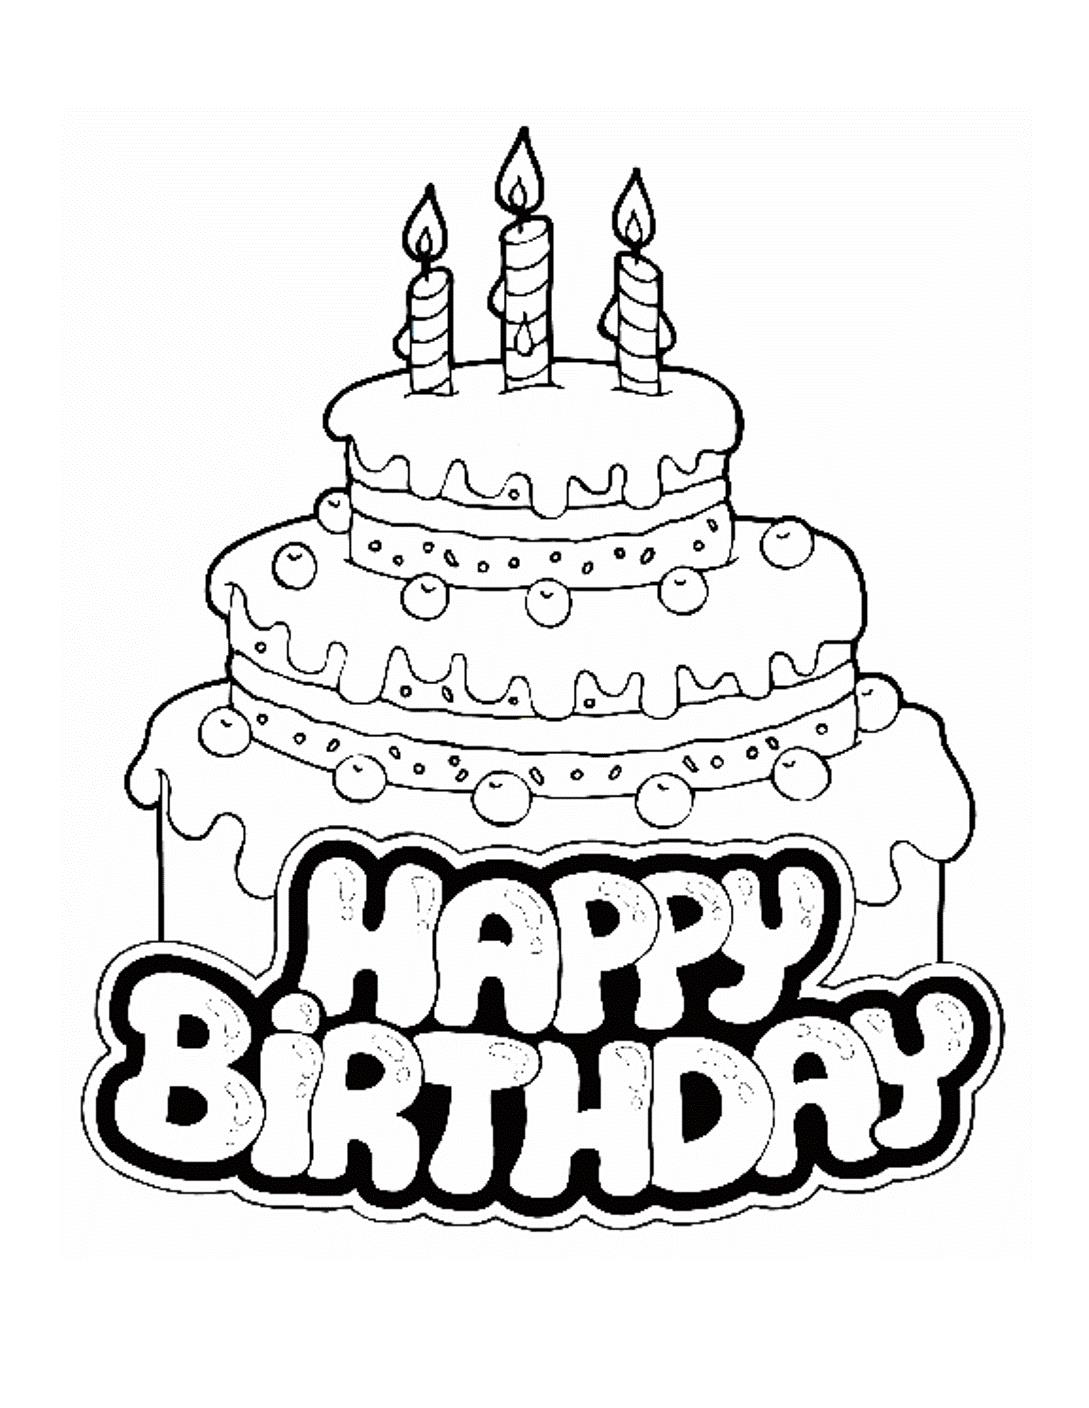 kids birthday coloring sheets ; To-Print-Birthday-Coloring-Sheets-76-For-Your-Gallery-Coloring-Ideas-with-Birthday-Coloring-Sheets